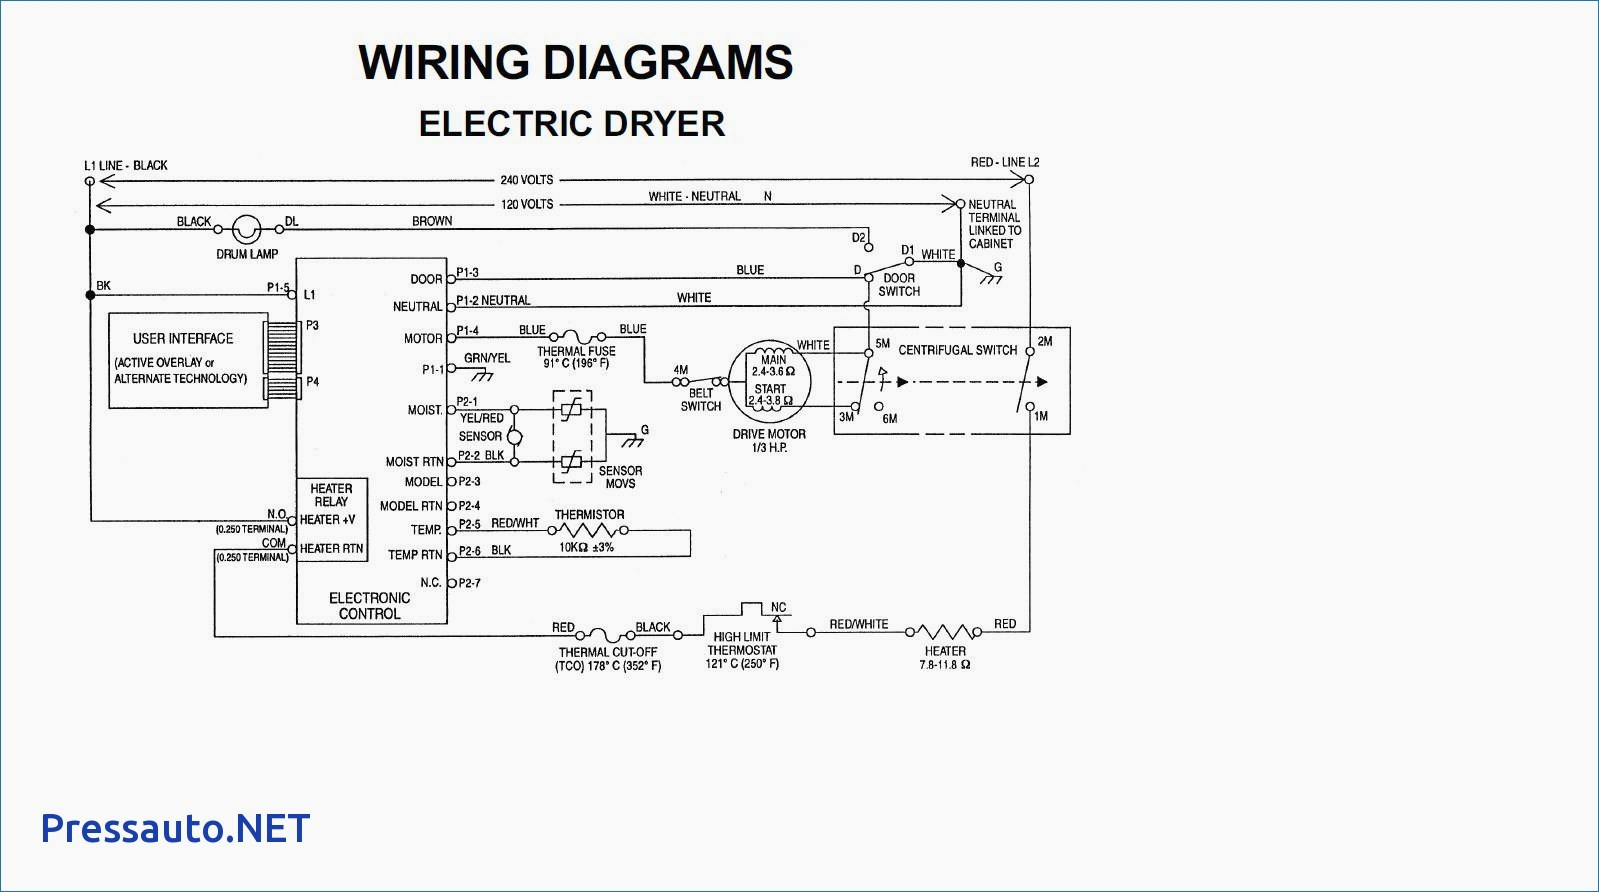 wiring diagram for a whirlpool dryer wiring diagram